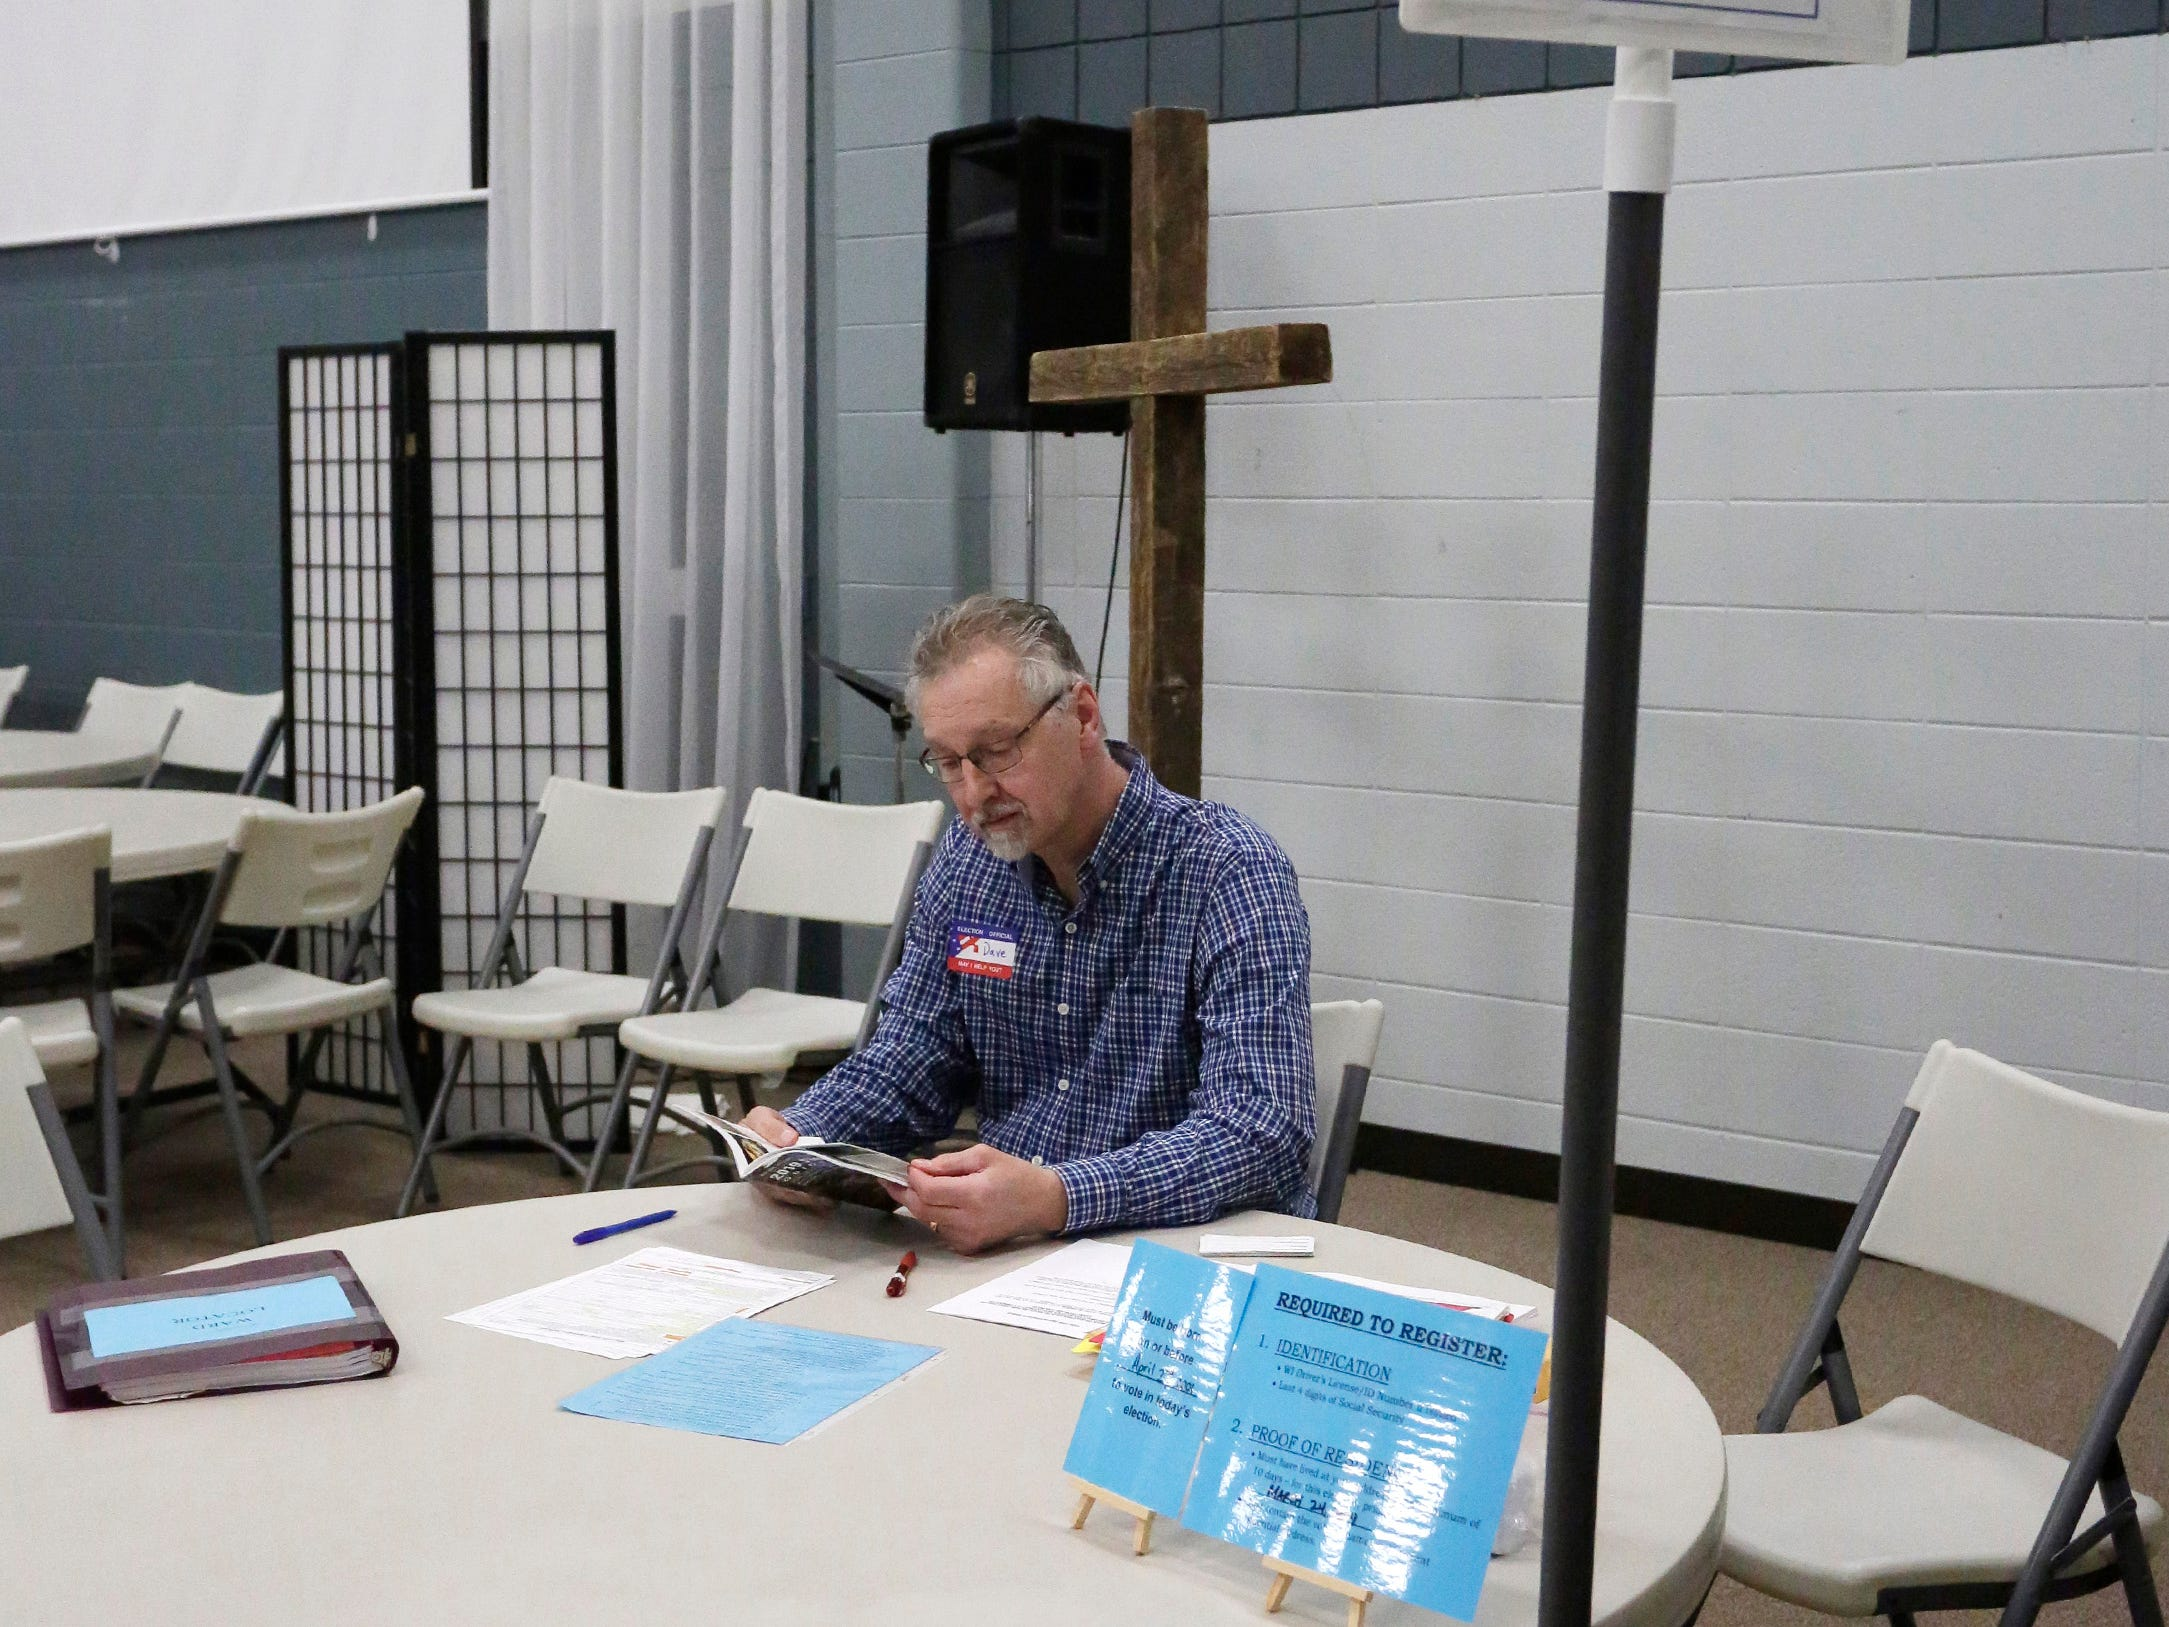 Poll worker Dave Derus waits for a voter to register at the Bethany Reformed polls, Tuesday, April 2, 2019, in Sheboygan, Wis.